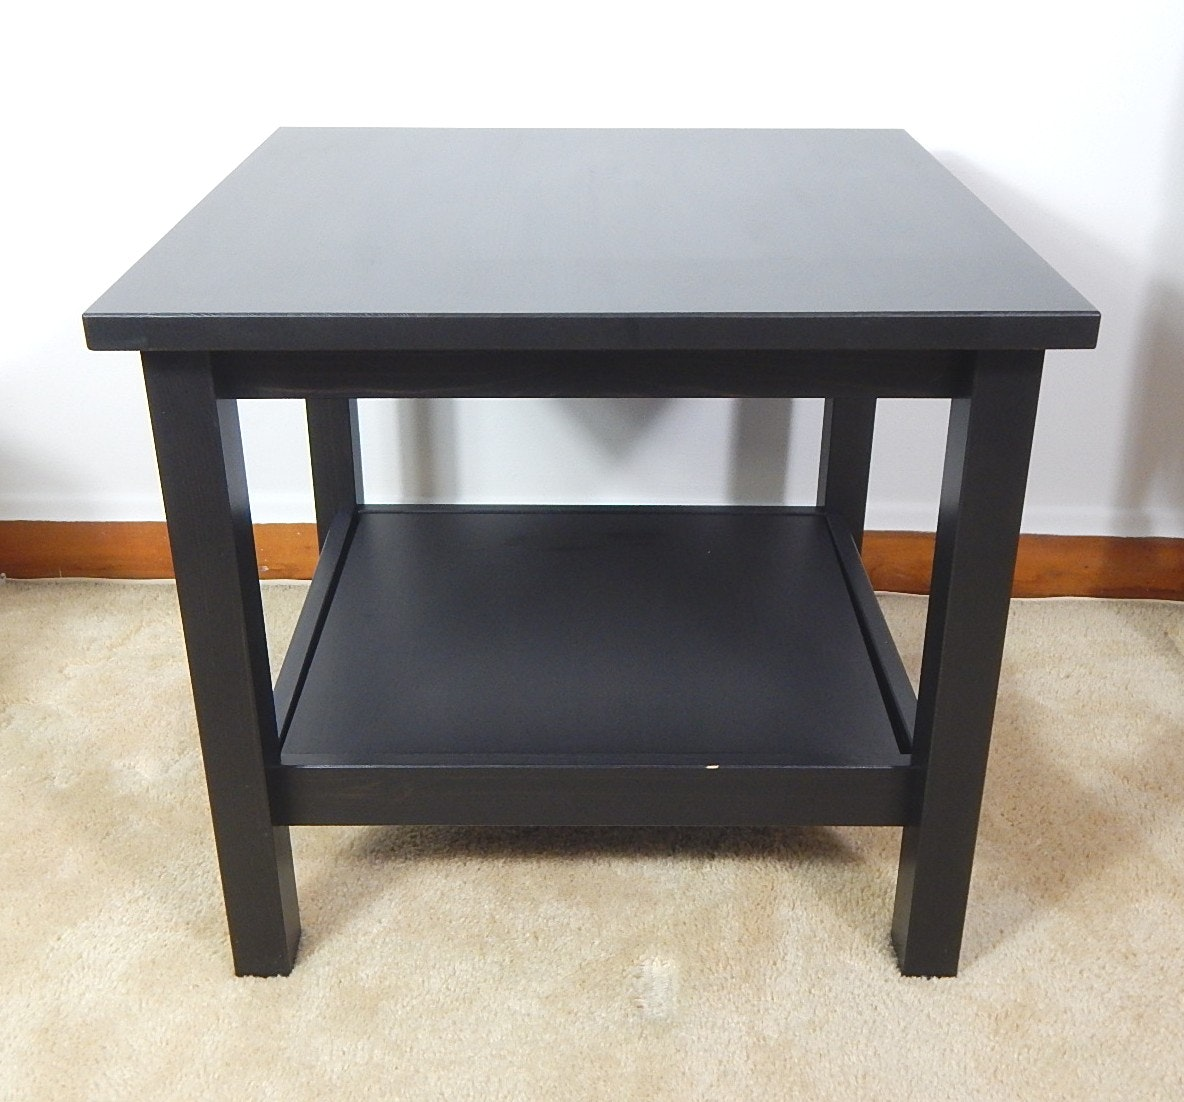 Black Block Style End Table